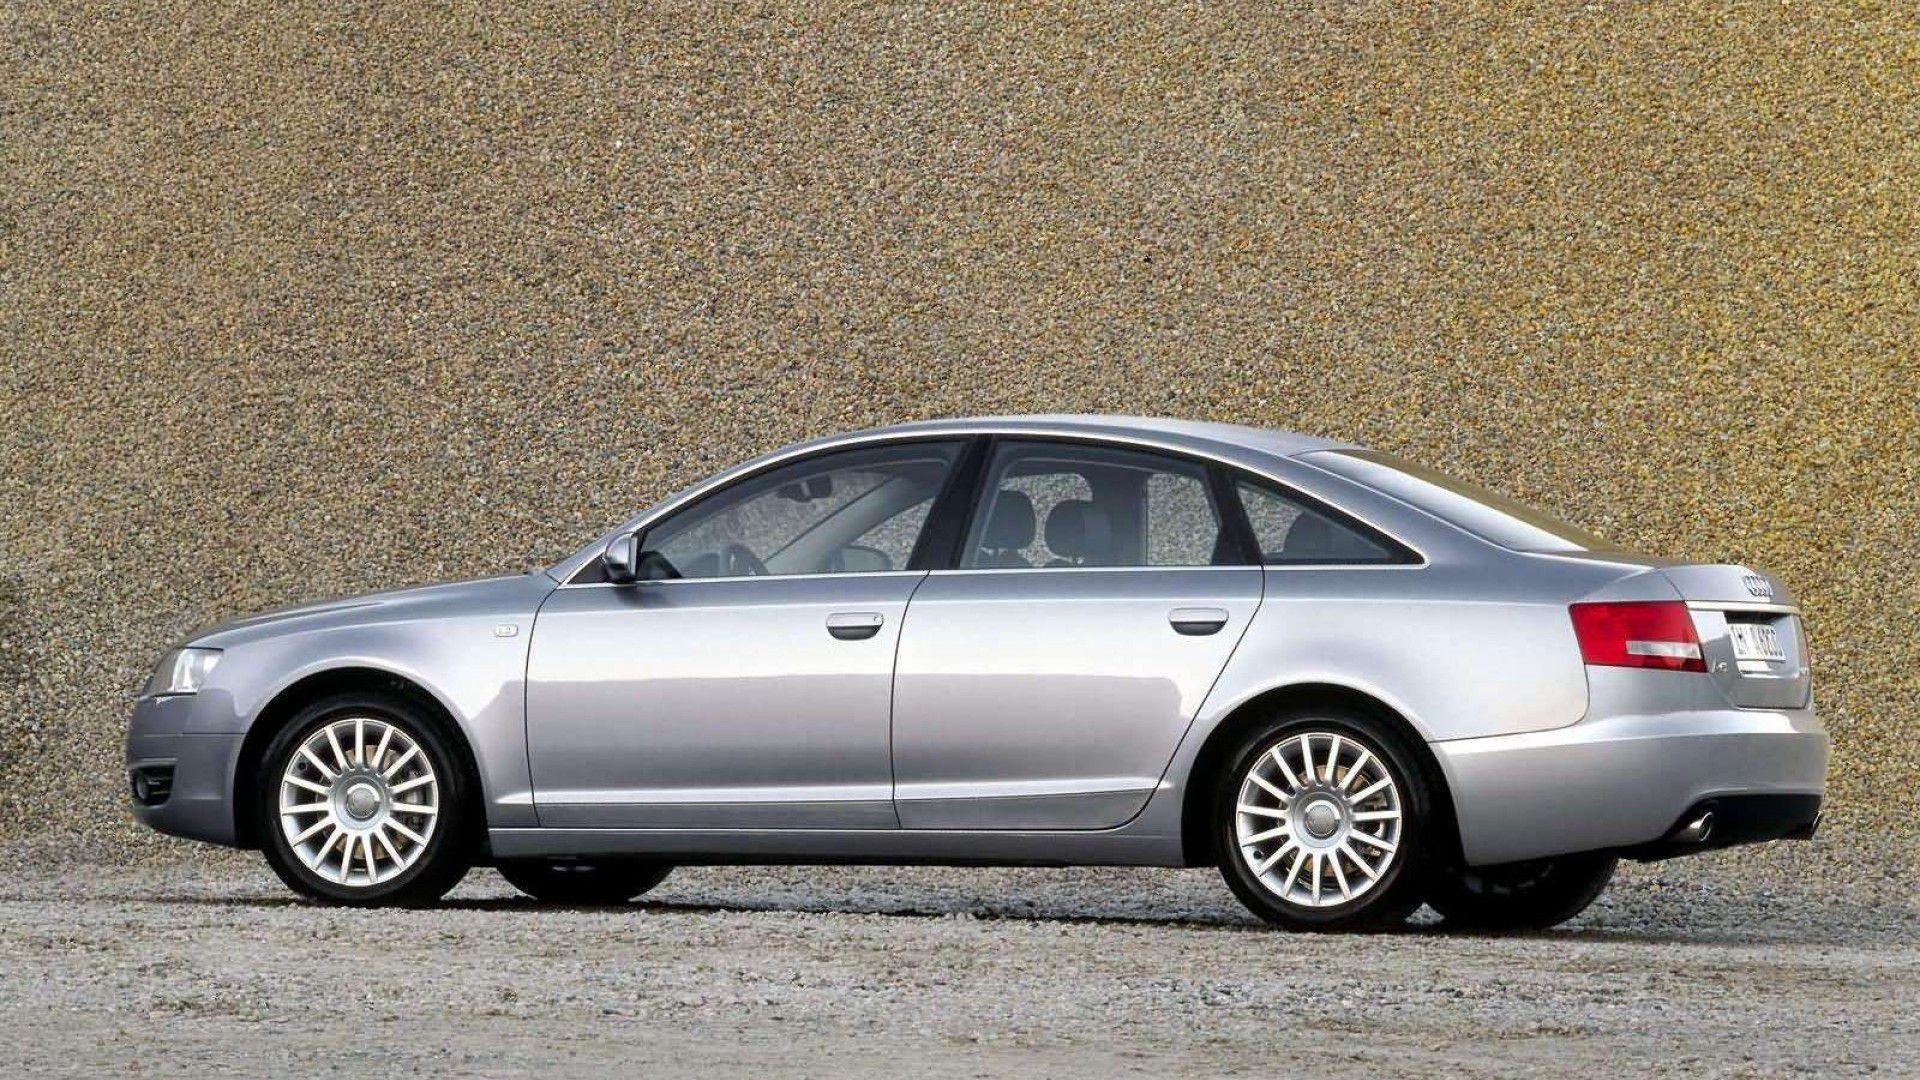 Audi A6 (2004 to 2008)